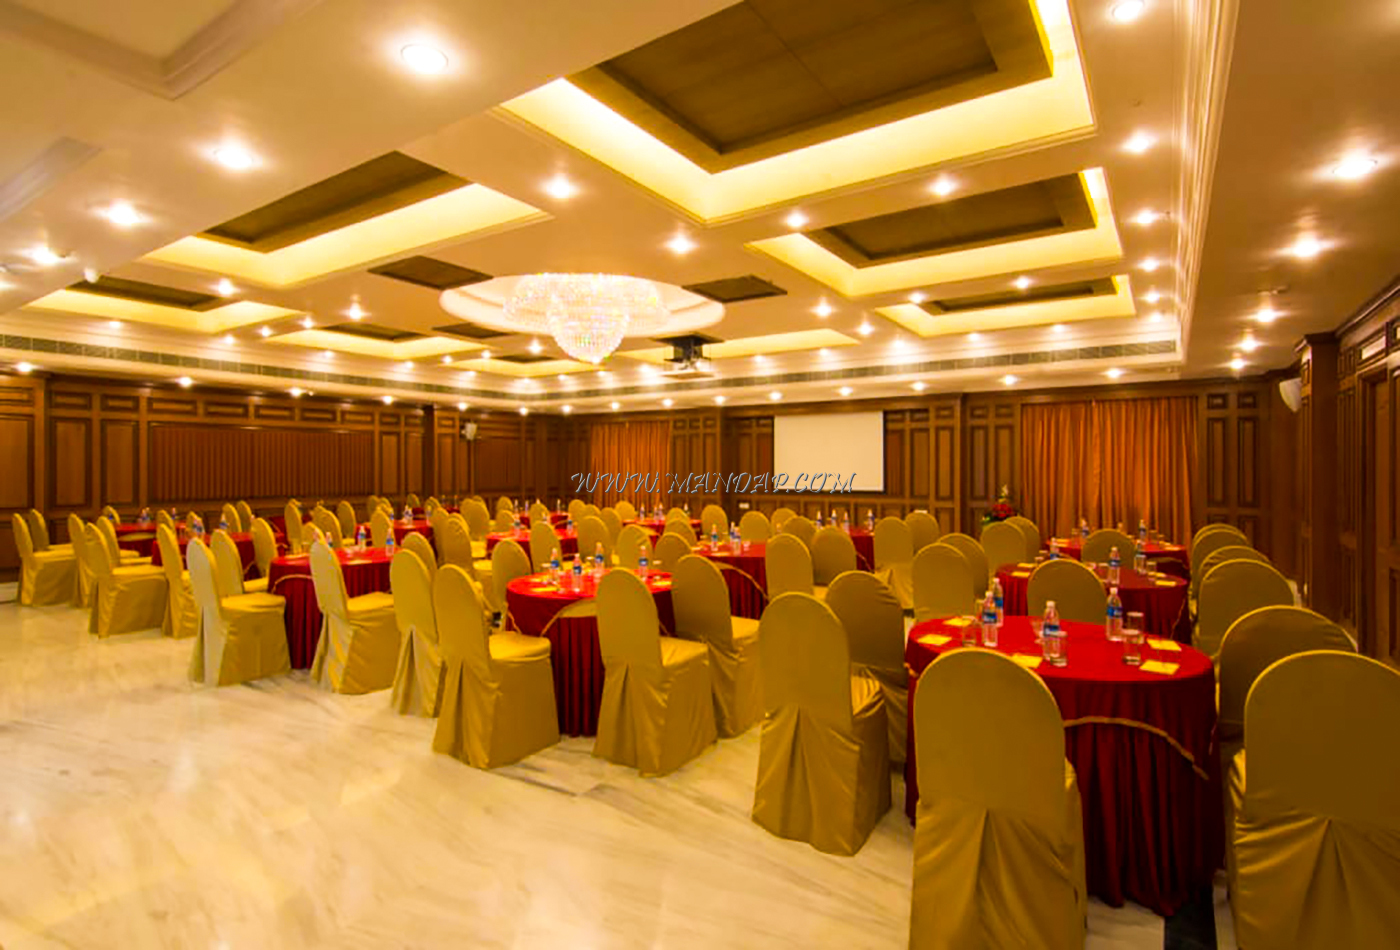 Find the availability of the Shenbaga Hotel And Convention Hall 3 (A/C) in Muthialpet, Pondicherry and avail special offers